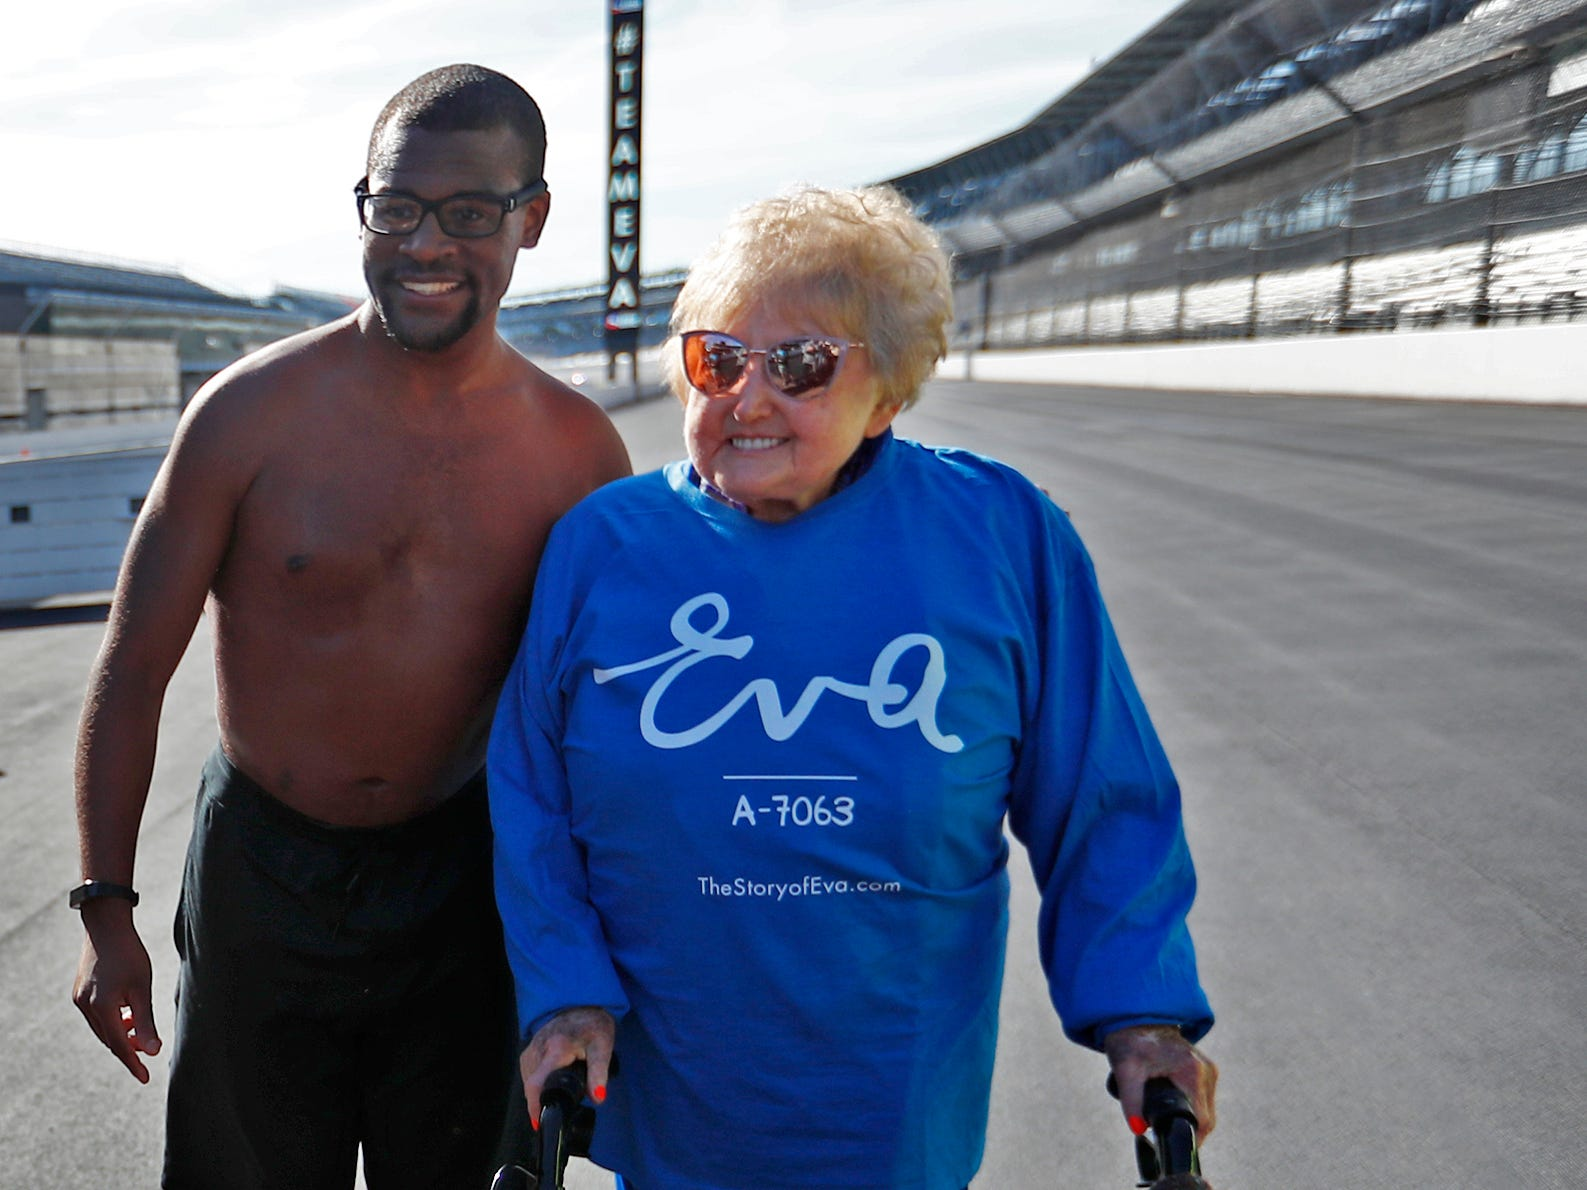 Andrew Peterson, left, poses with Holocaust survivor Eva Kor at the Indianapolis Motor Speedway Yard of Bricks, Wednesday, Oct. 24, 2018, midway during the pace-setting run for the 2019 OneAmerica 500 Festival Mini-Marathon.  The 500 Festival will donate $1 to the CANDLES Holocaust Museum in Terre Haute for every mini-marathon participant who finishes the 2019 race in a better time than Team Eva.  Peterson was one of the runners and Korn did the last short leg of the race.